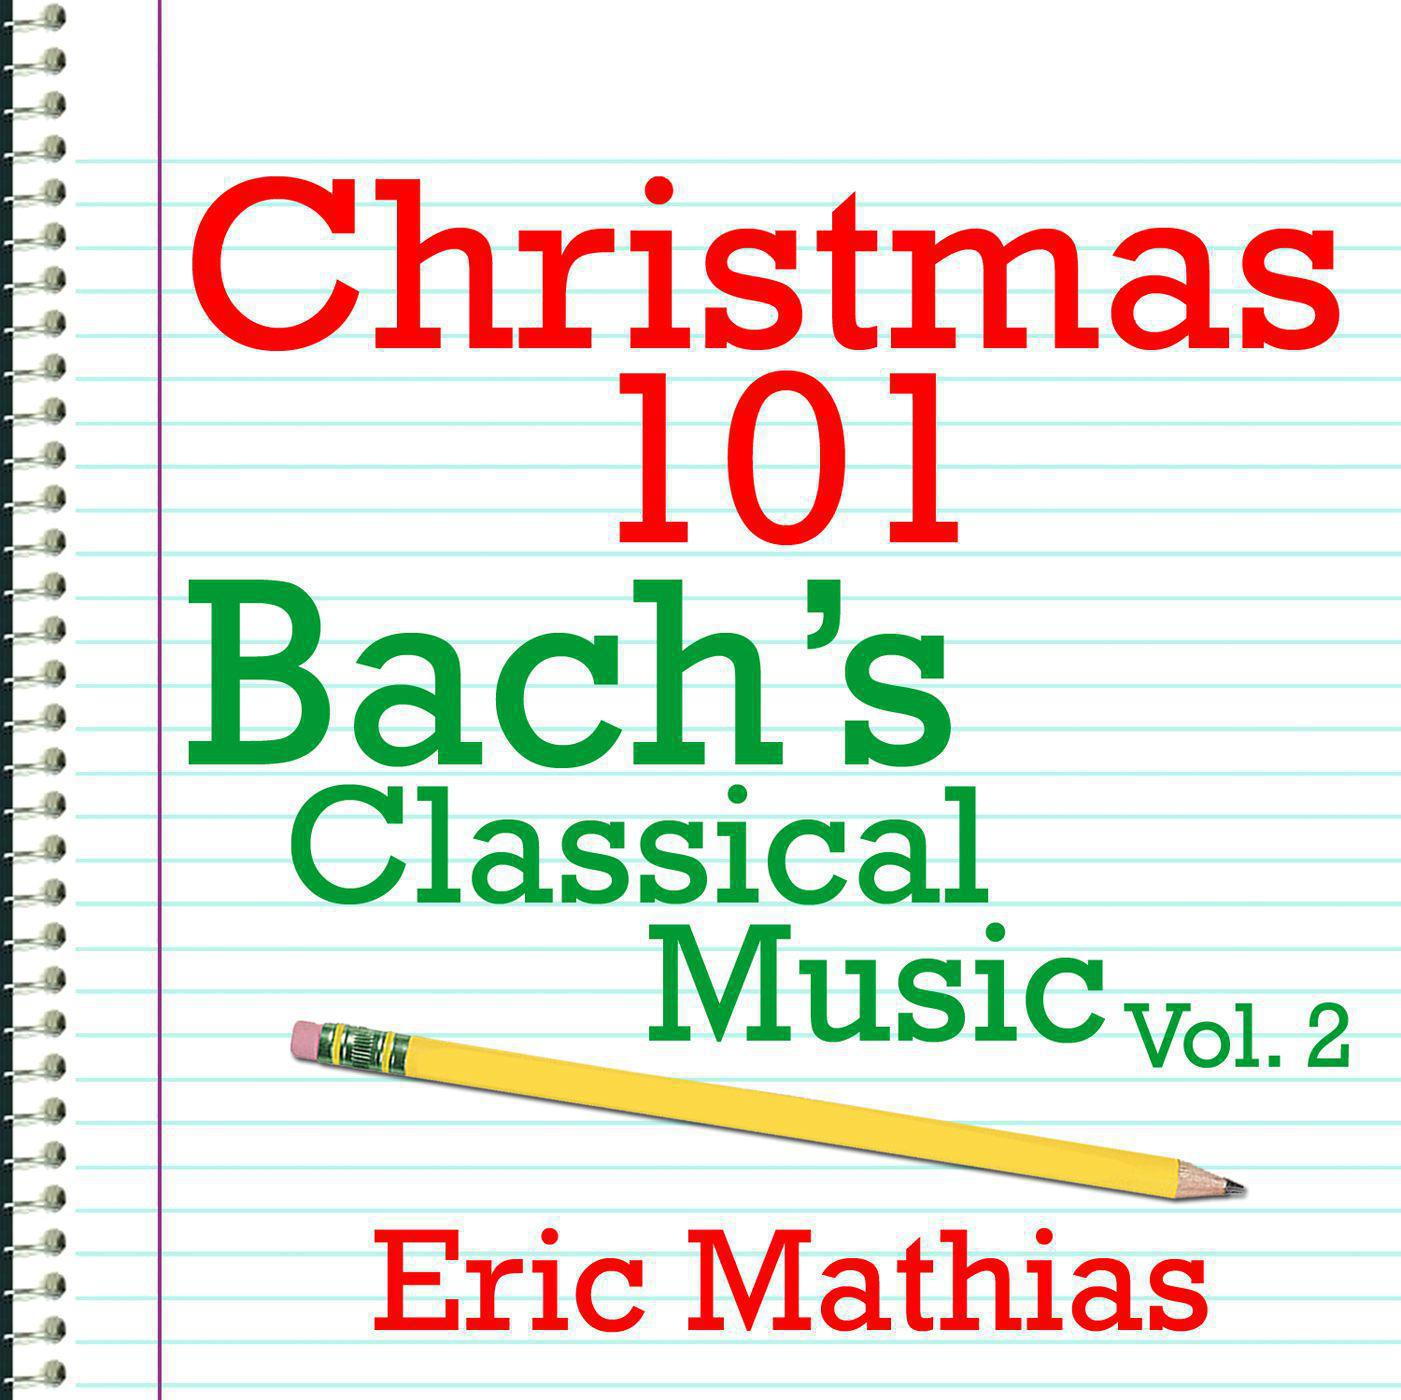 Christmas 101 - Bach's Classical Music Vol. 2